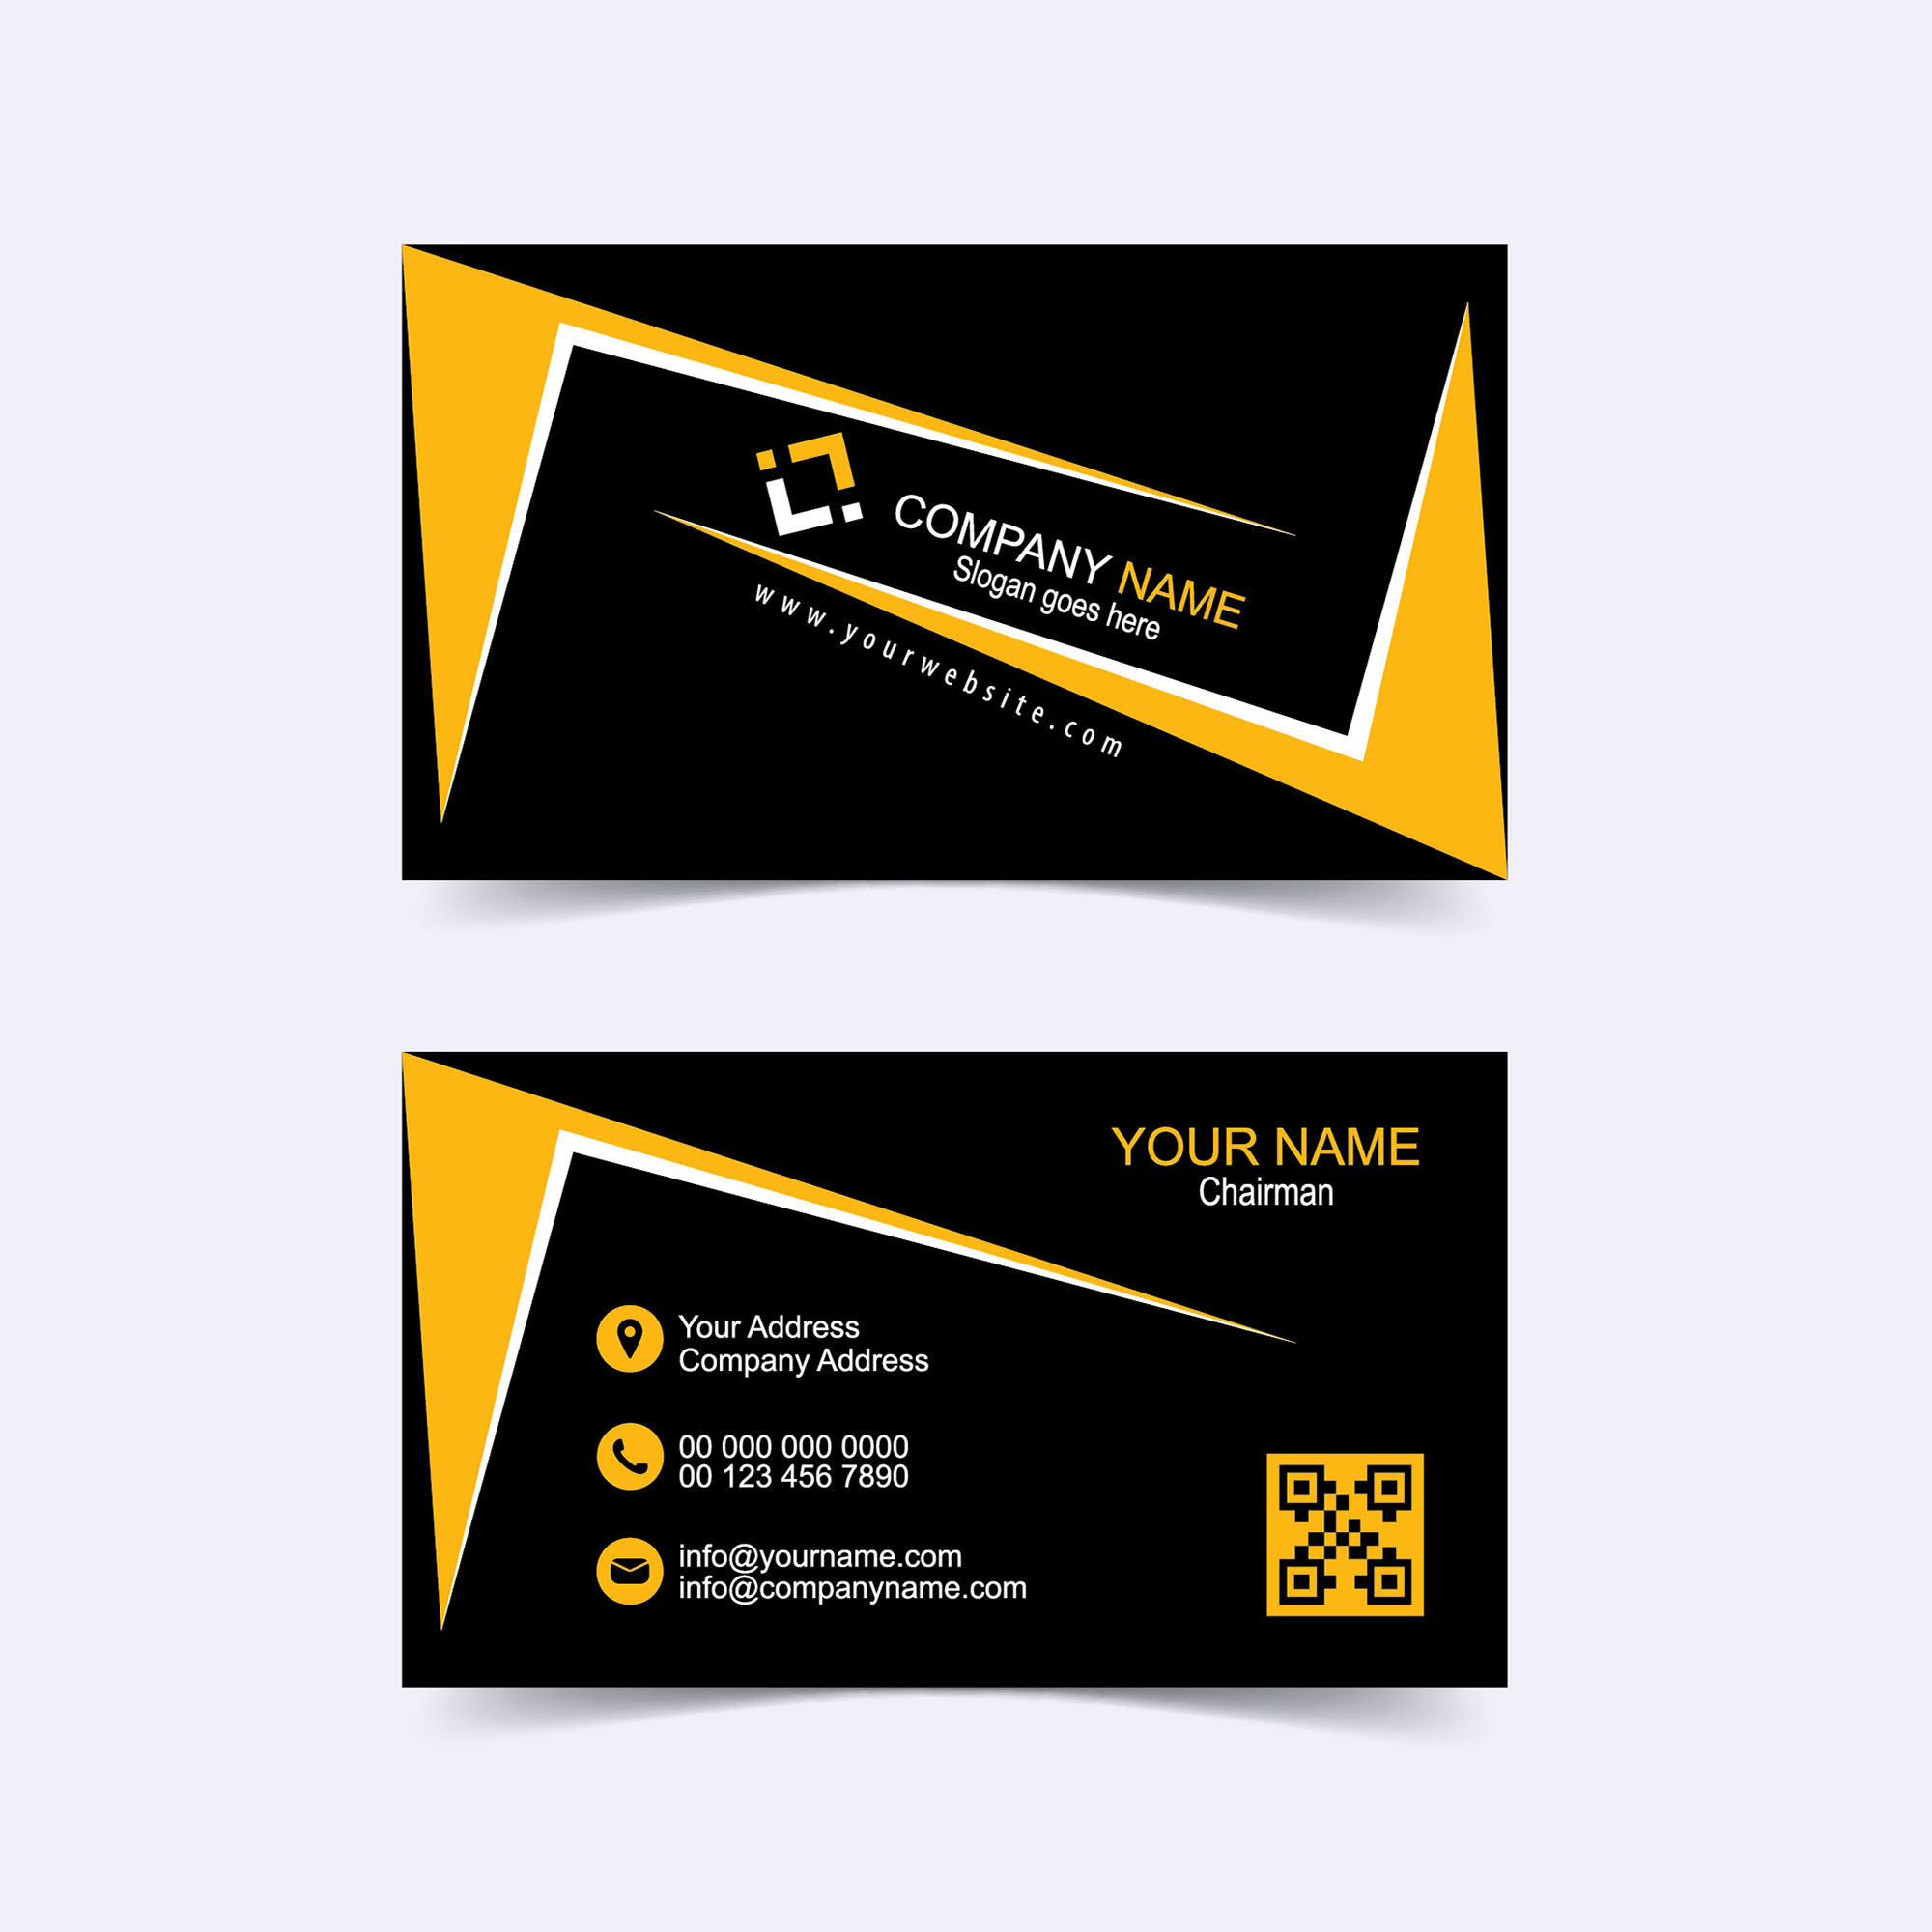 Modern Business Card Template Vector Free Download - Wisxi.com